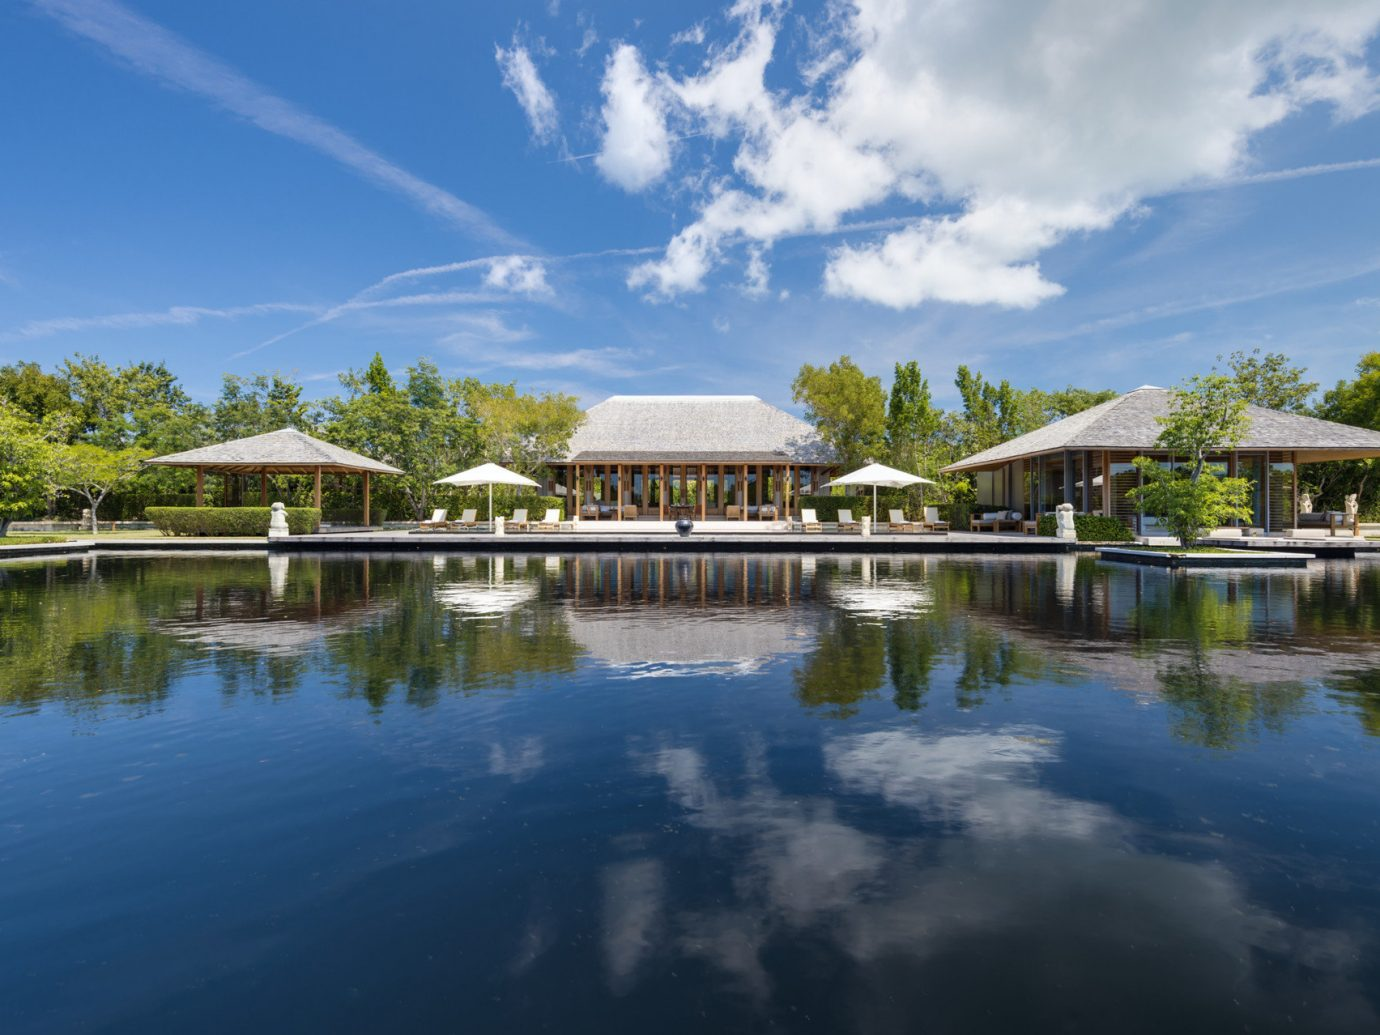 Hotels Romance outdoor sky water reflection Nature pond swimming pool estate Lake reflecting pool vacation River Resort reservoir surrounded traveling shore day